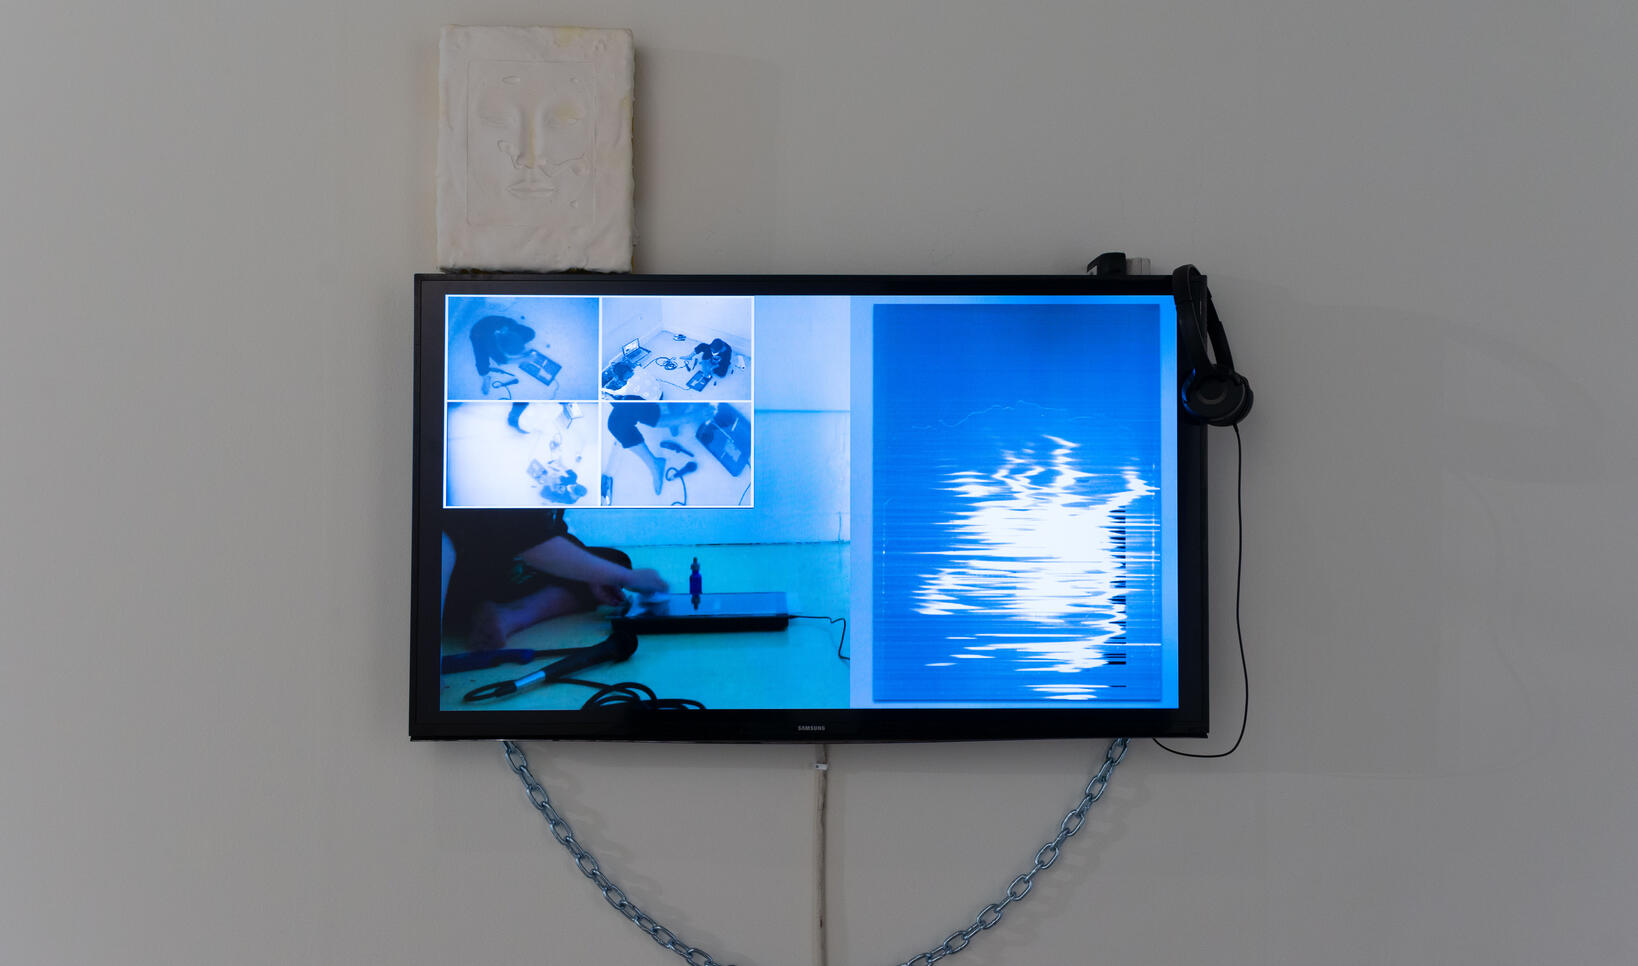 Installation of video rendered in shades of blue. ; Emma Beatrez